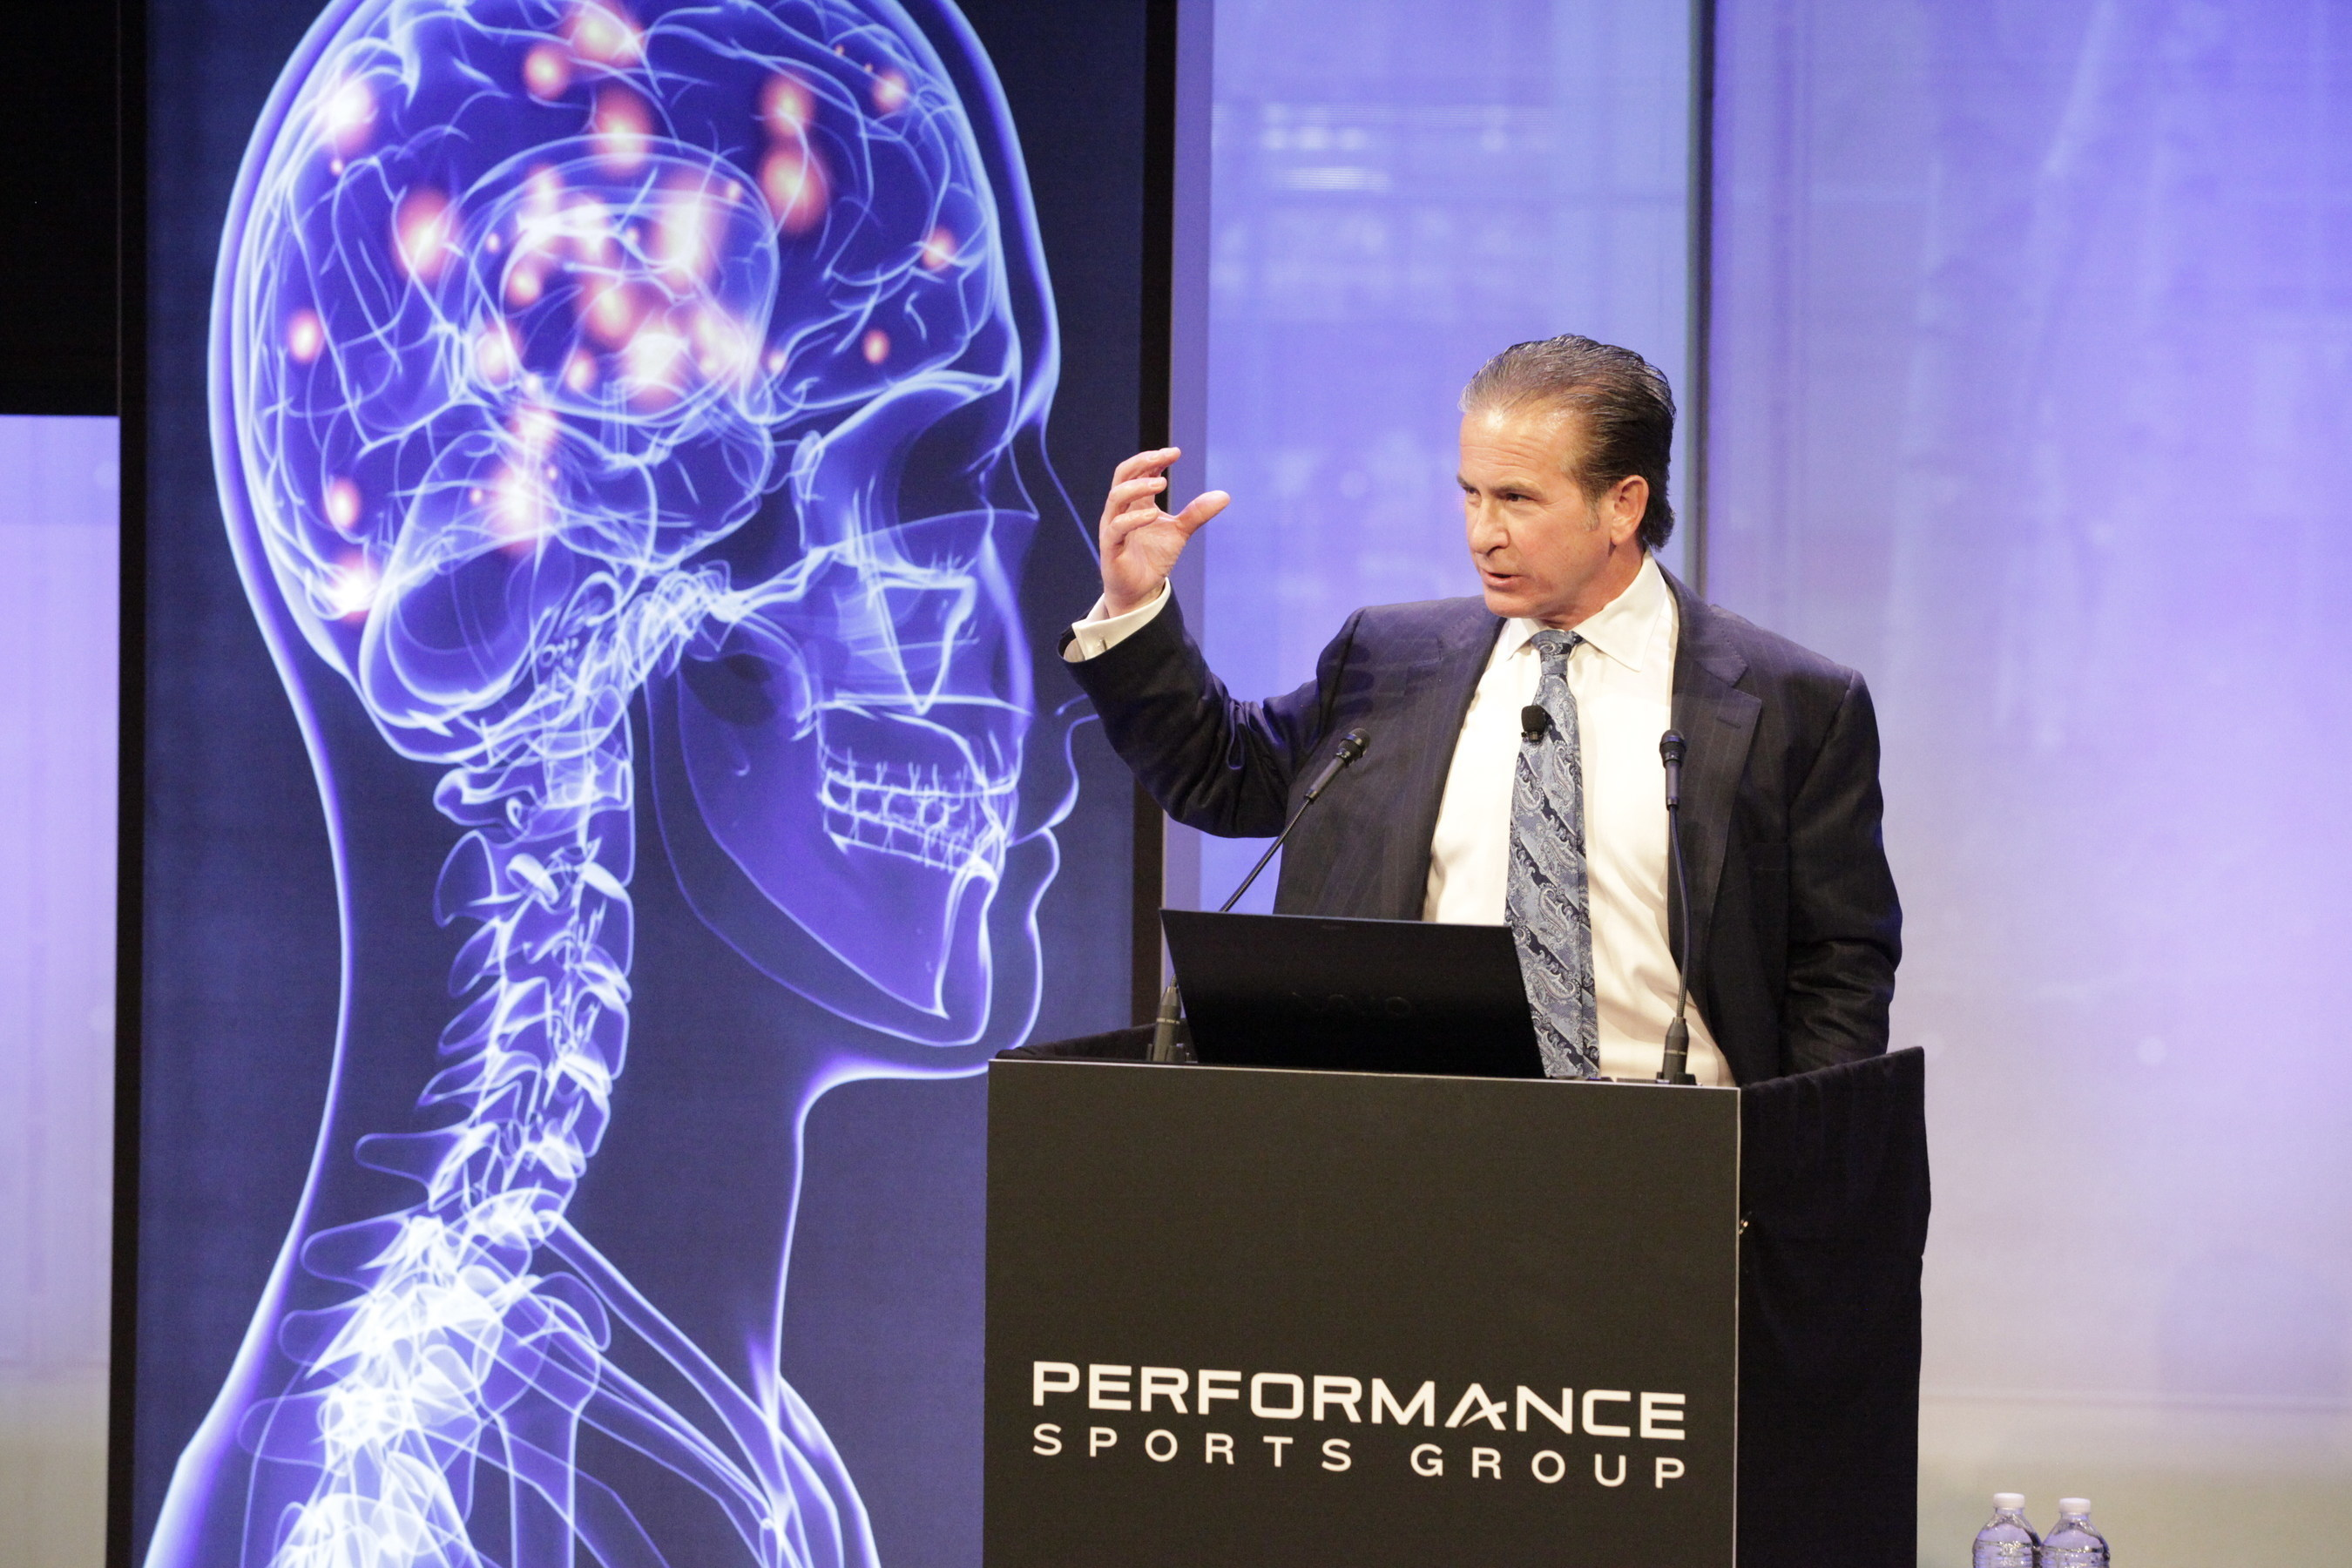 At a Performance Sports Group event earlier today in New York, leading neurosurgeon Dr. Julian Bales unveiled a  ...